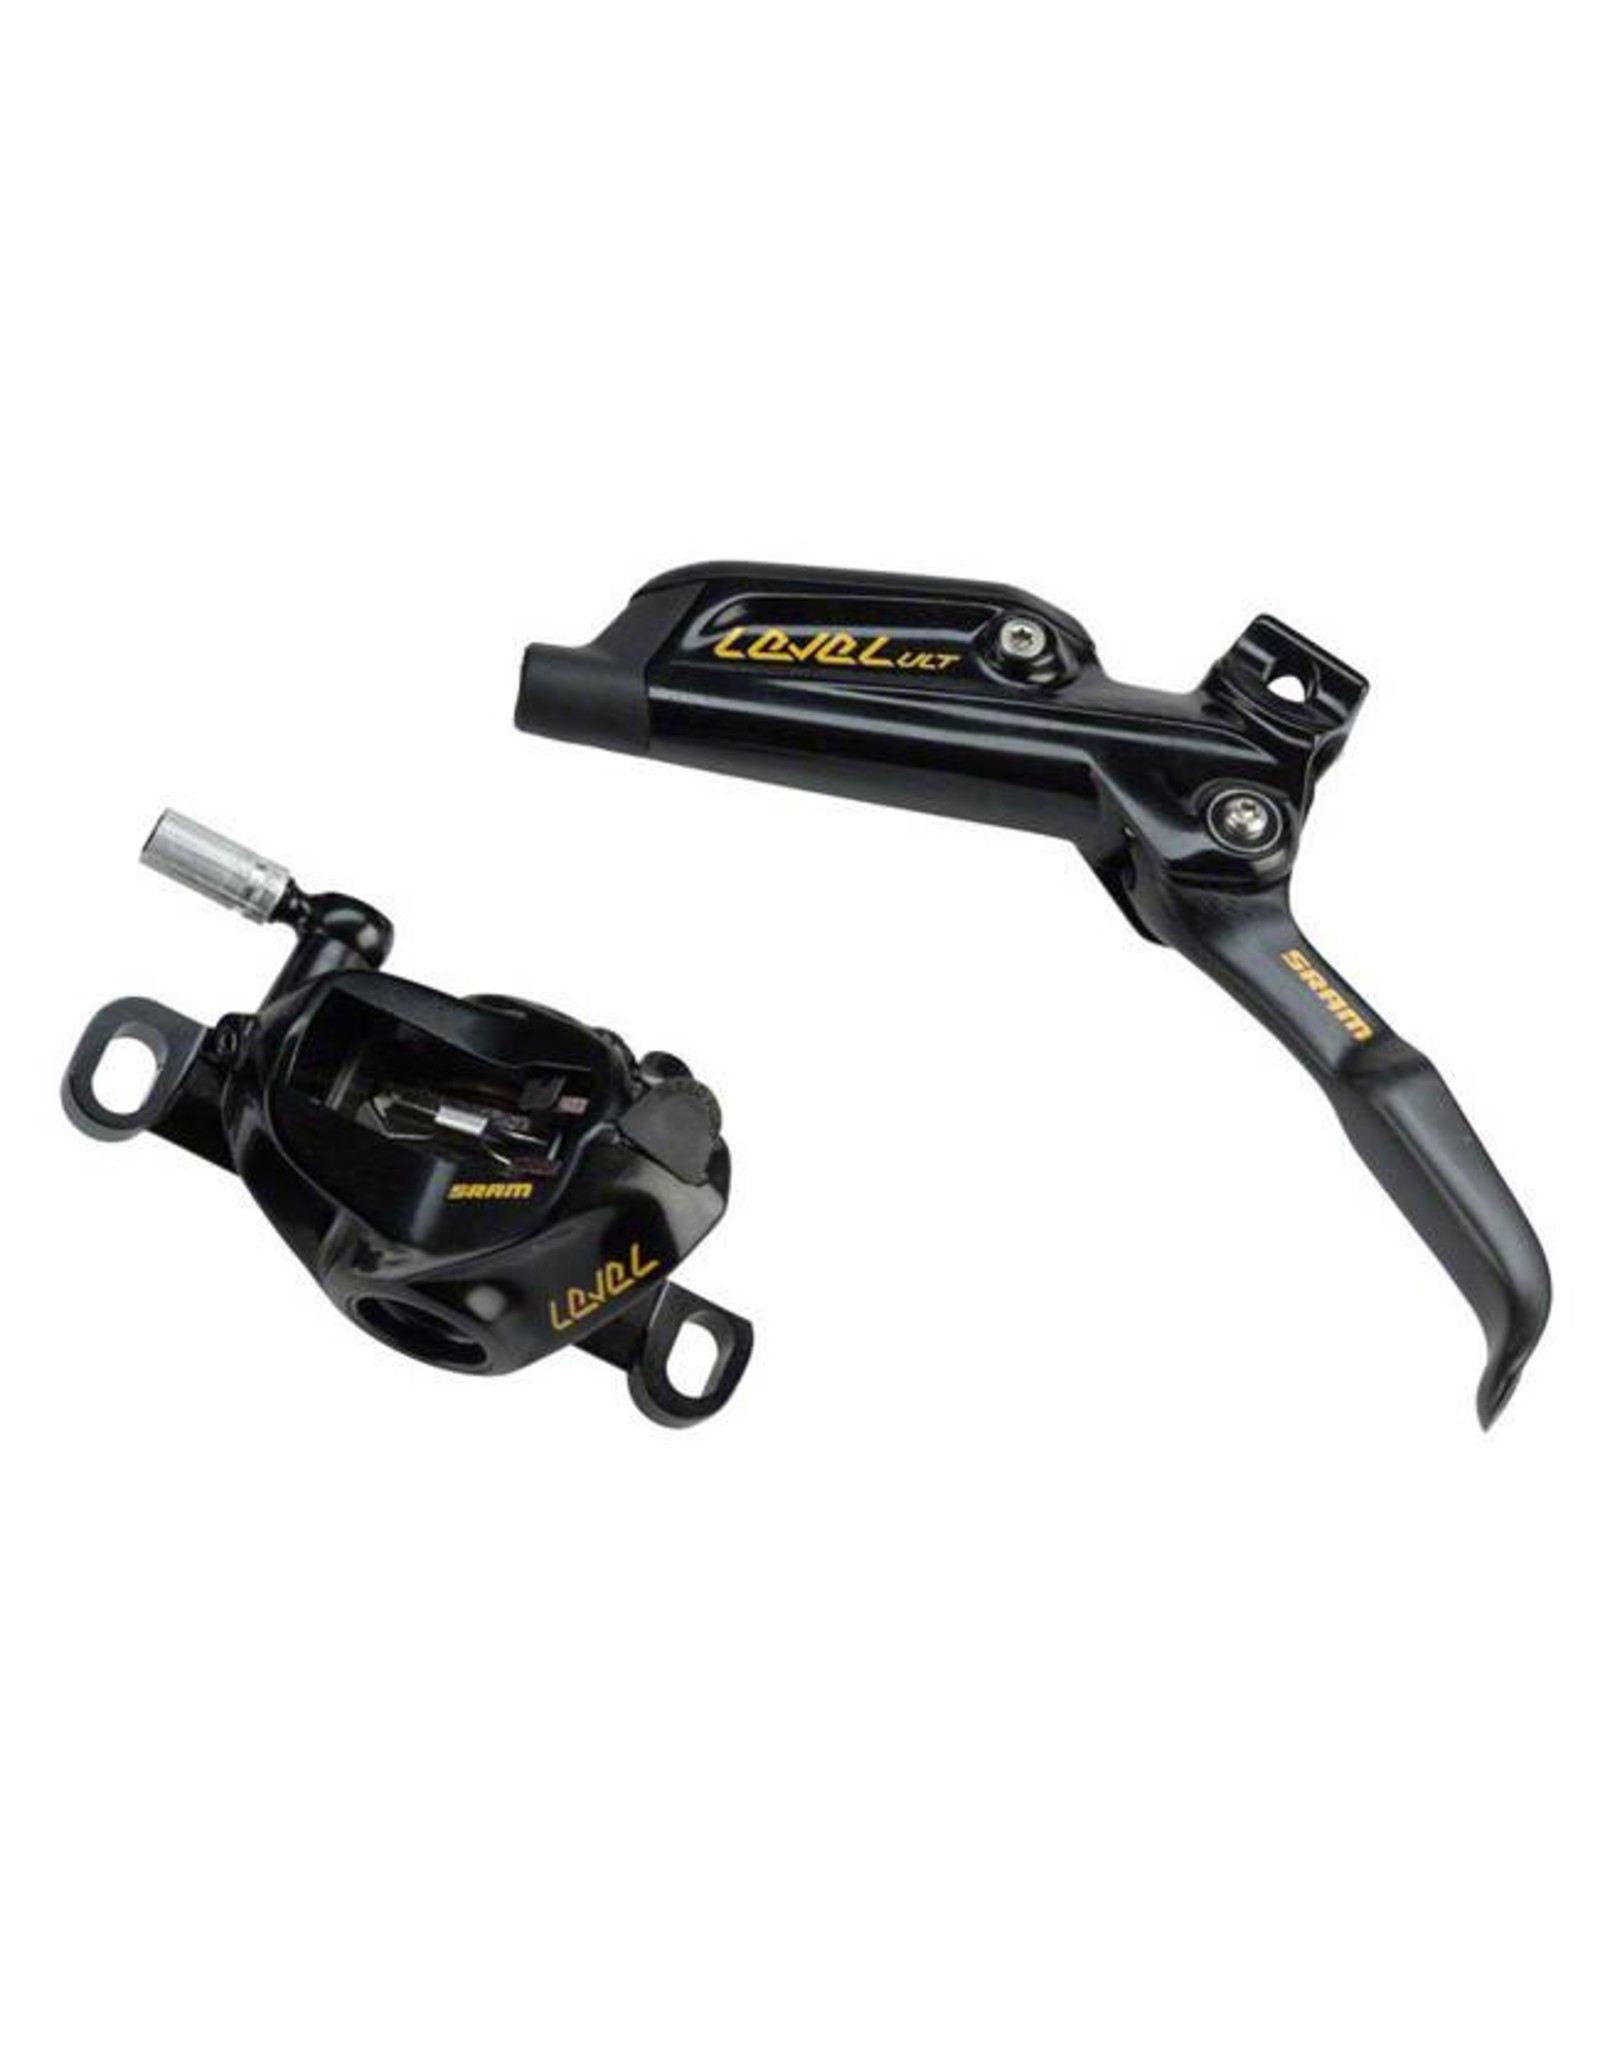 SRAM SRAM Level Ultimate Rear Disc Brake 1800mm Hose with Ti Hardware, Black/Gold, Rotor/Bracket Sold Separately A1